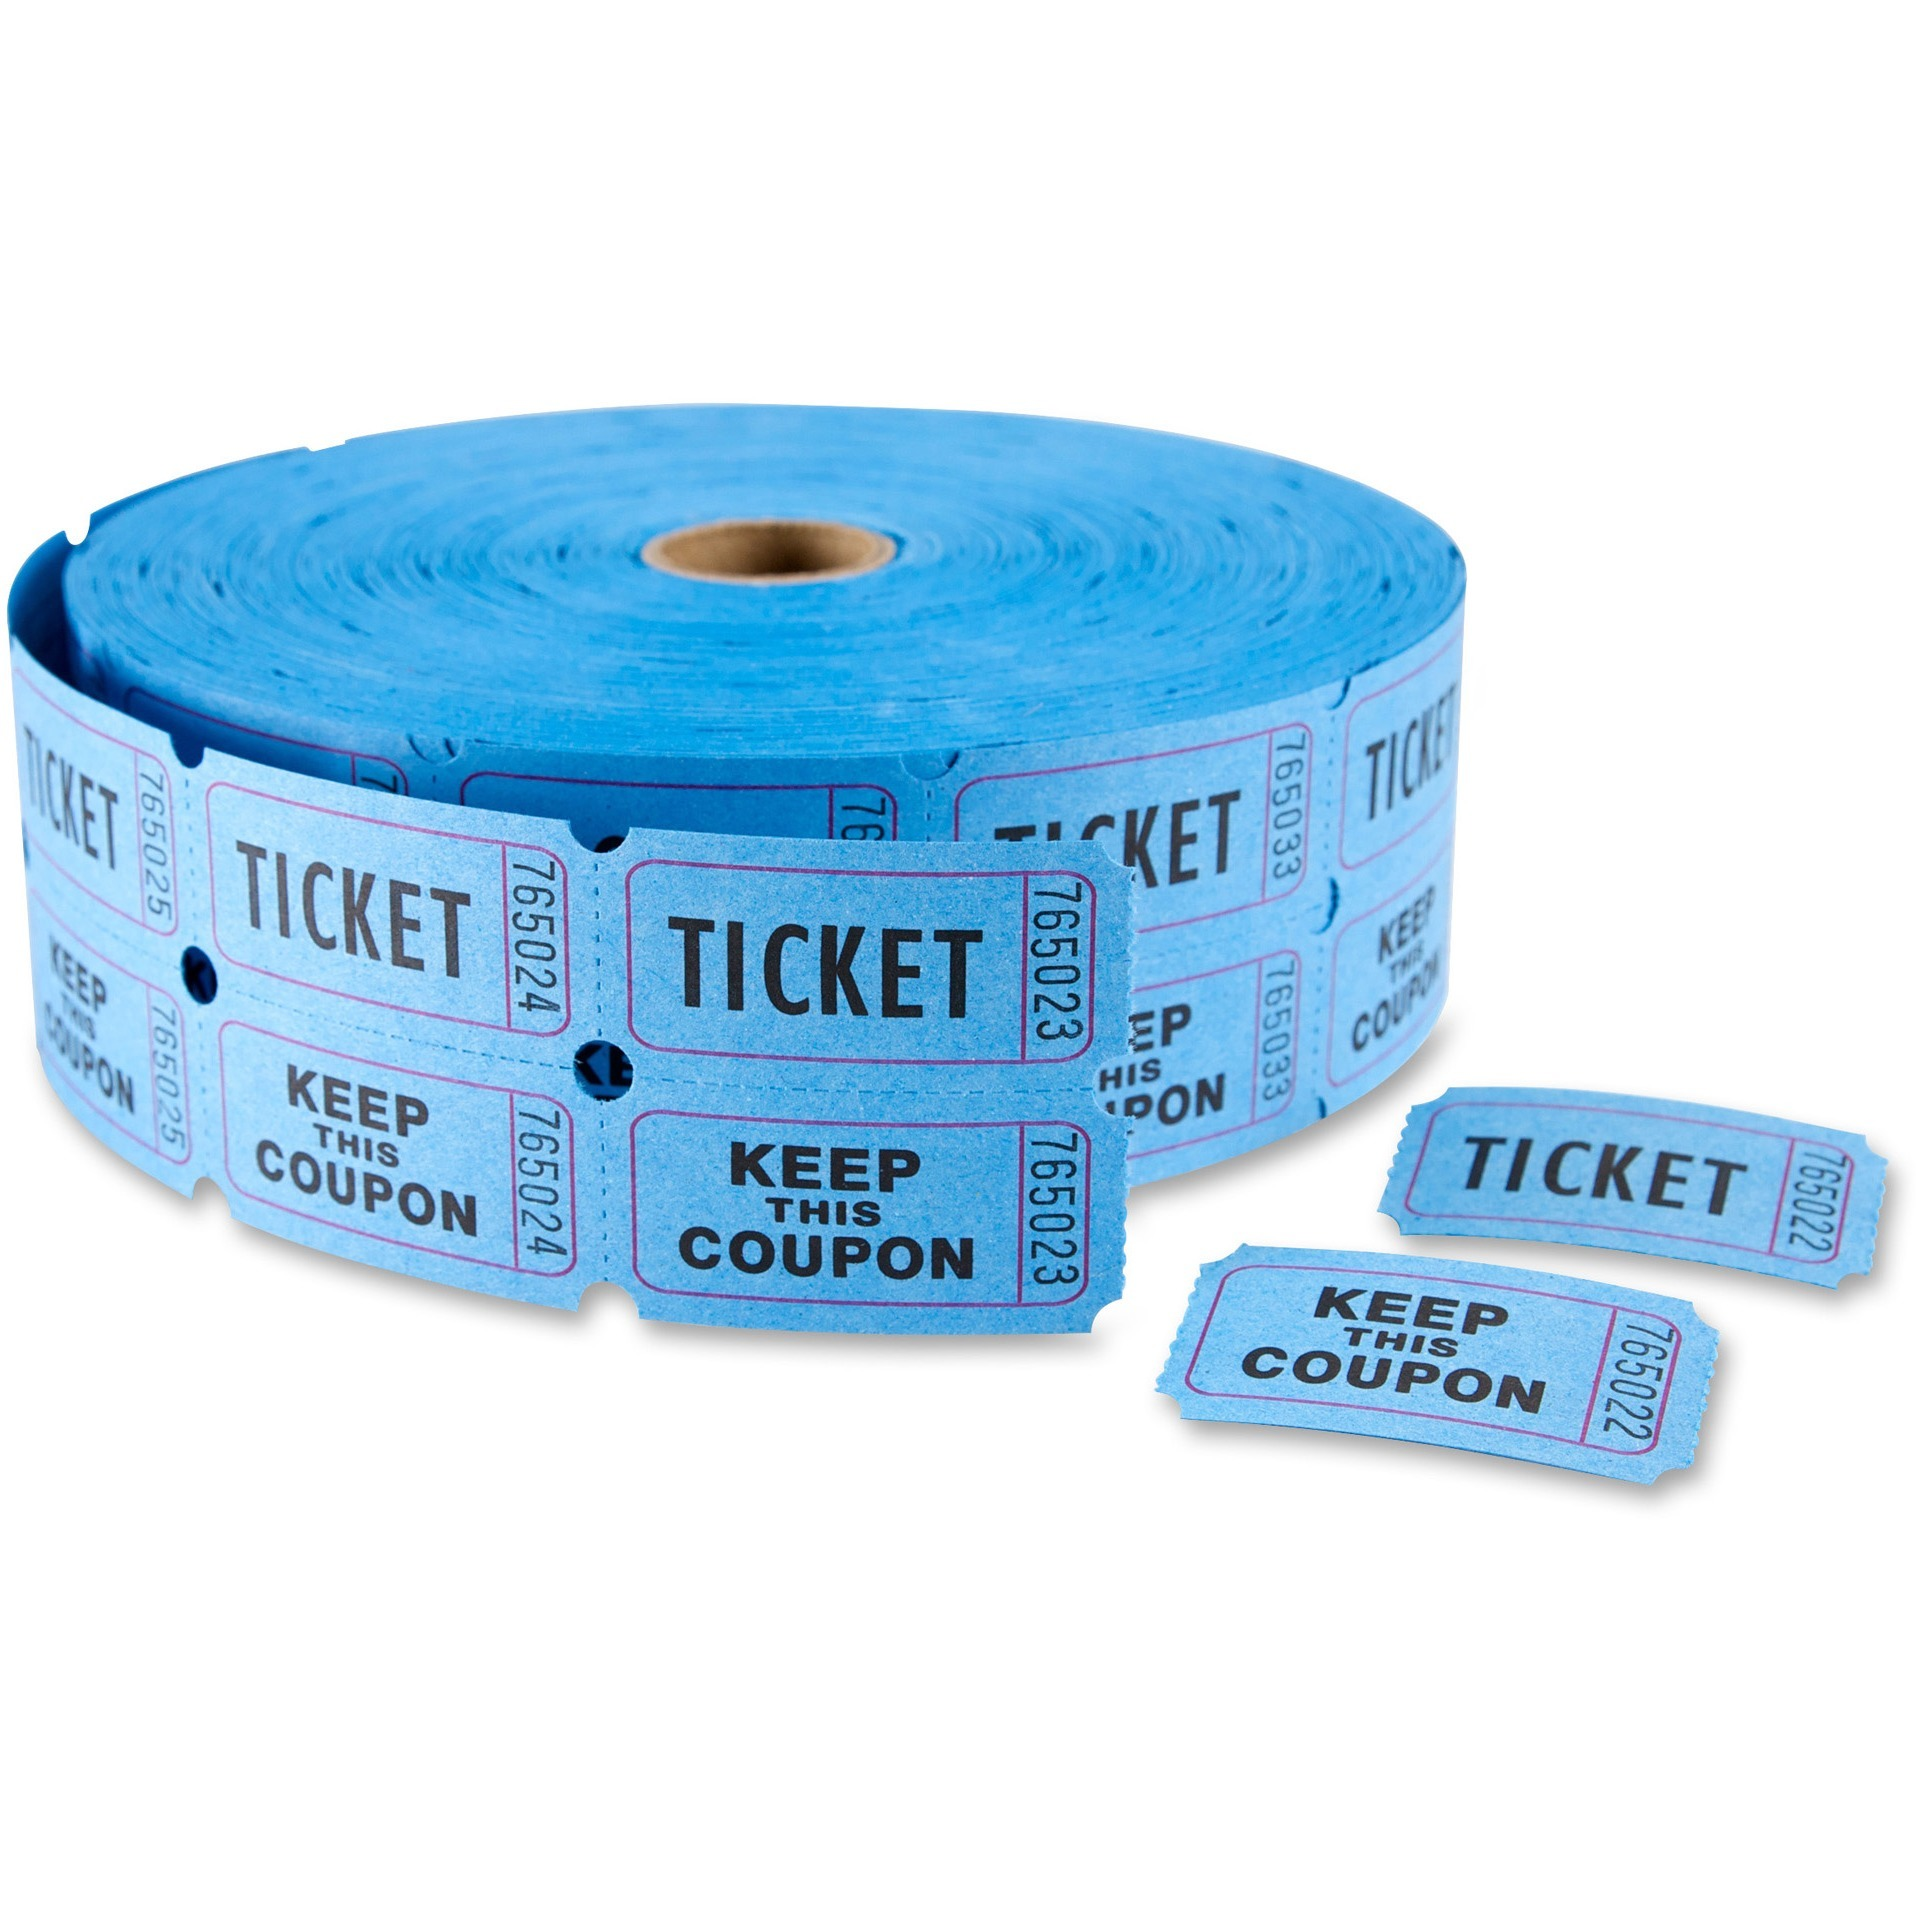 """MACO Double Roll Ticket, """"Ticket/Keep This Coupon"""""""